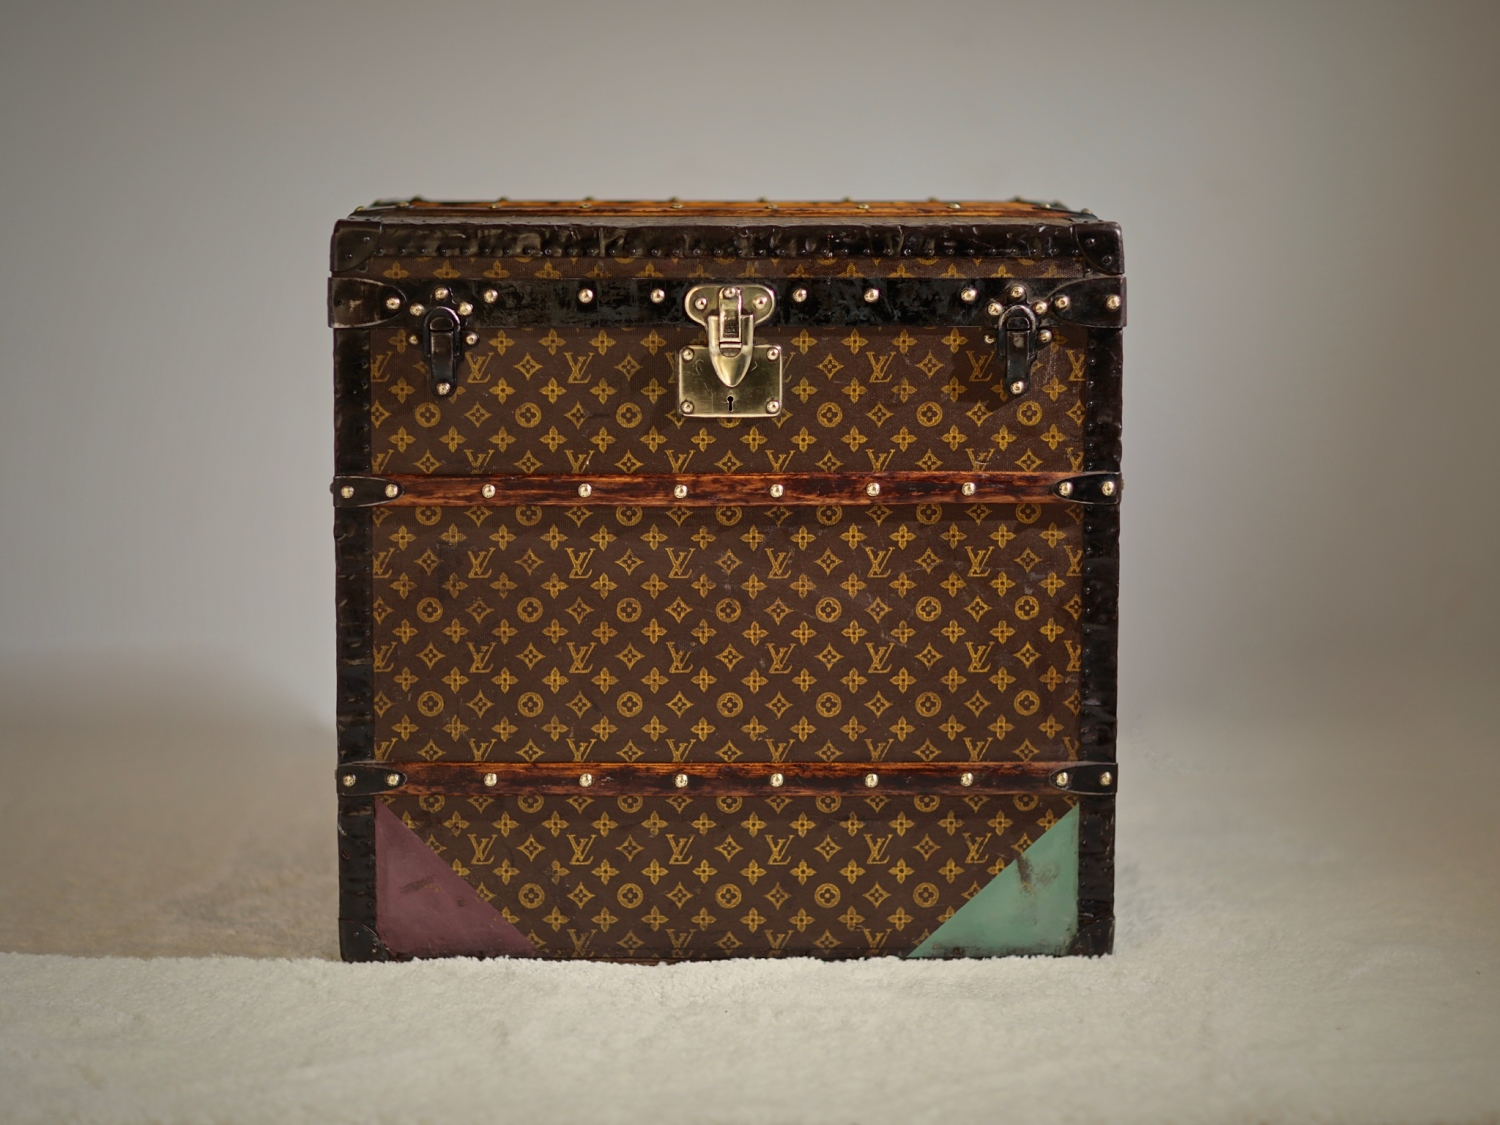 unk-louis-vuitton-thumbnail-product-5690-9